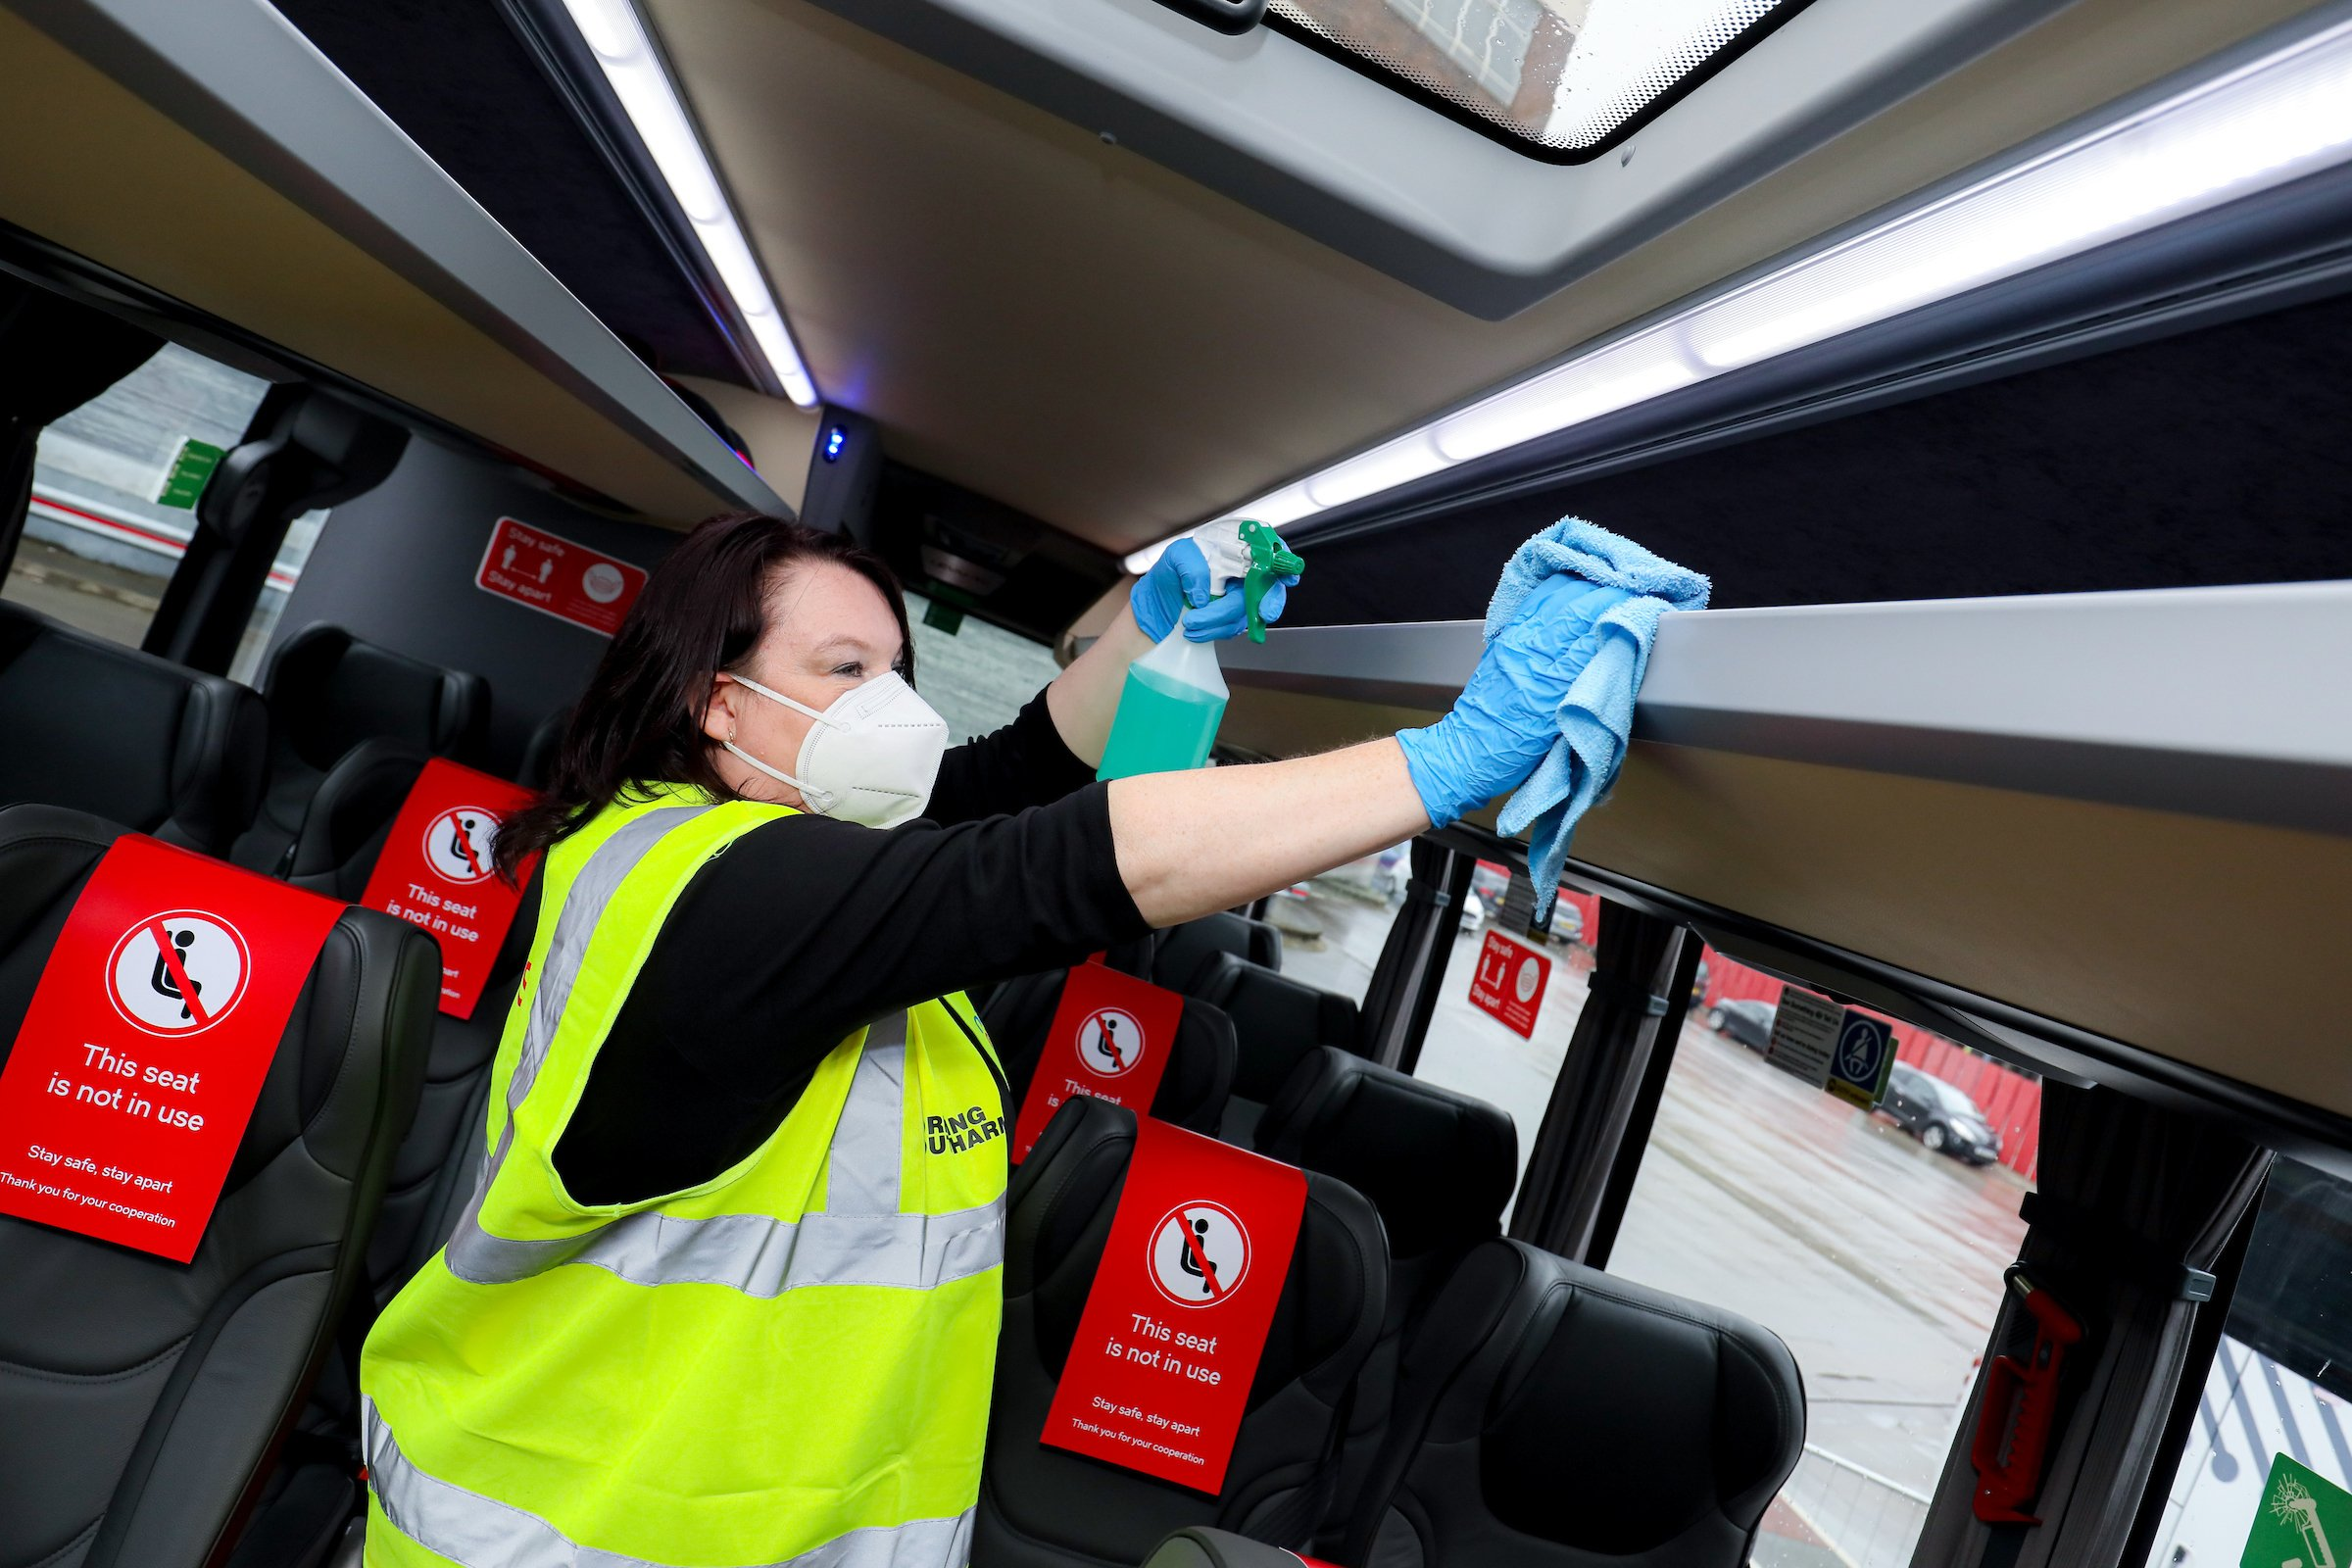 National Express beats previous guidance as passengers get back on buses